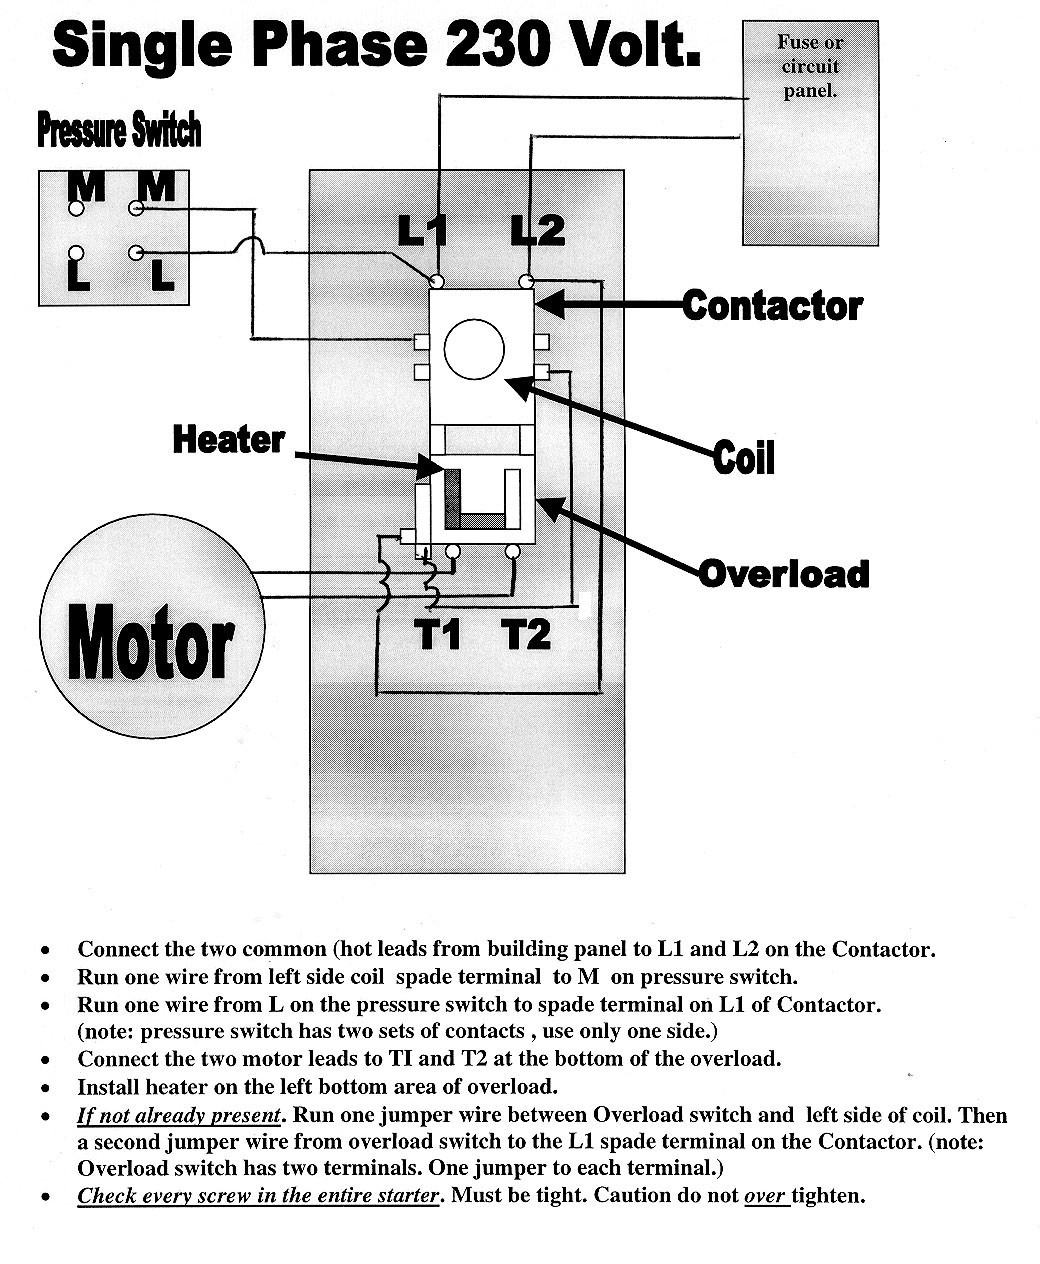 240v motor wiring diagram single phase Collection-Ac Motor Wiring Diagram and Afif With Single Phase Motor with Capacitor forward and Reverse 2-n